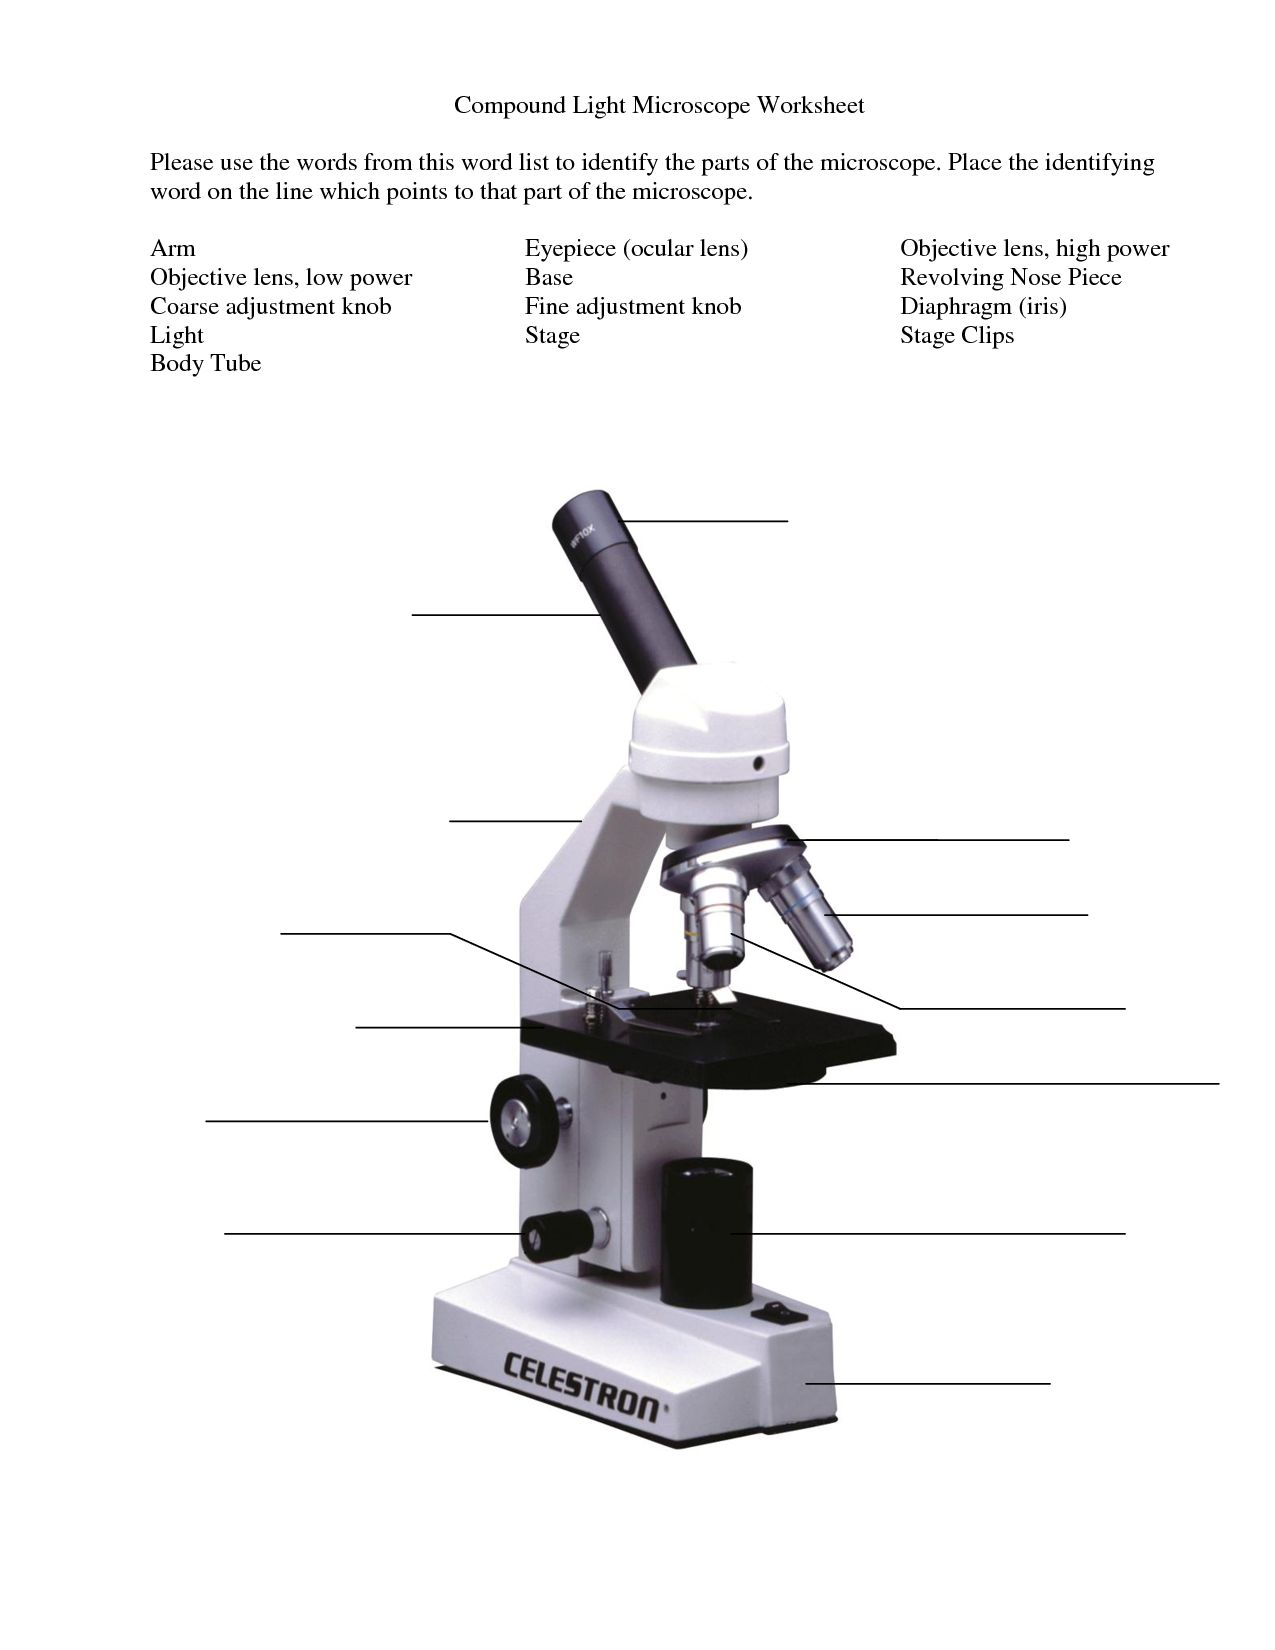 Microscope Parts And Use Worksheet Answer Key